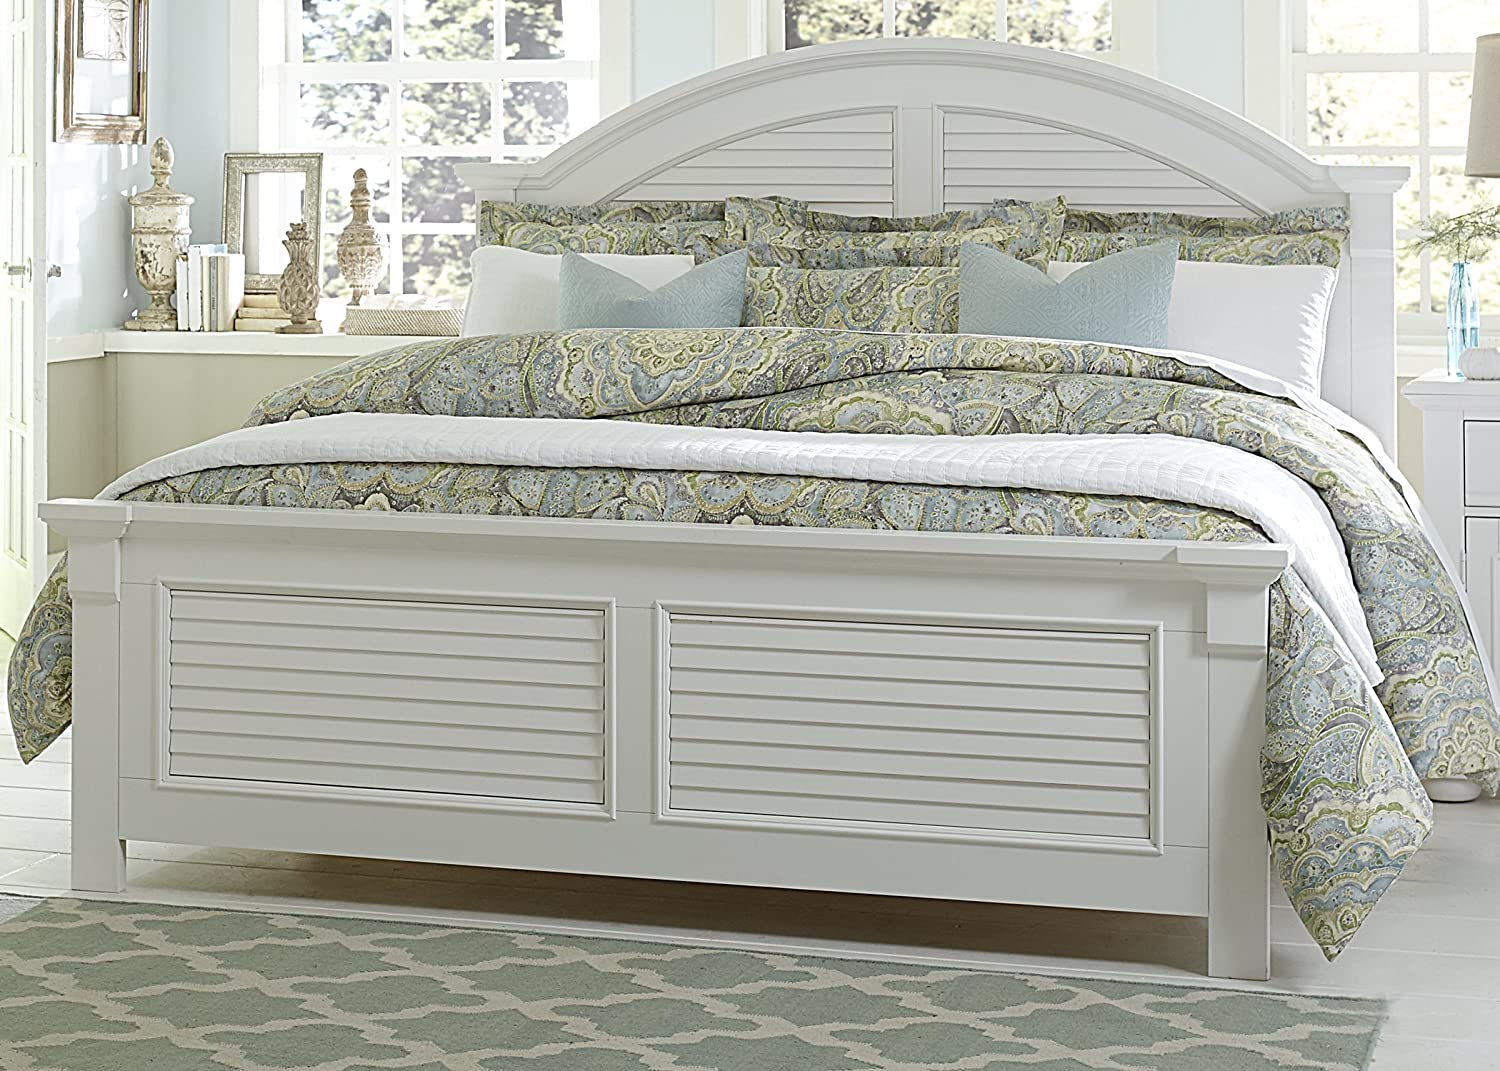 Amazon.com: Liberty Furniture 607 BR KPB Summer House I Panel Bed, King,  Oyster White: Kitchen U0026 Dining